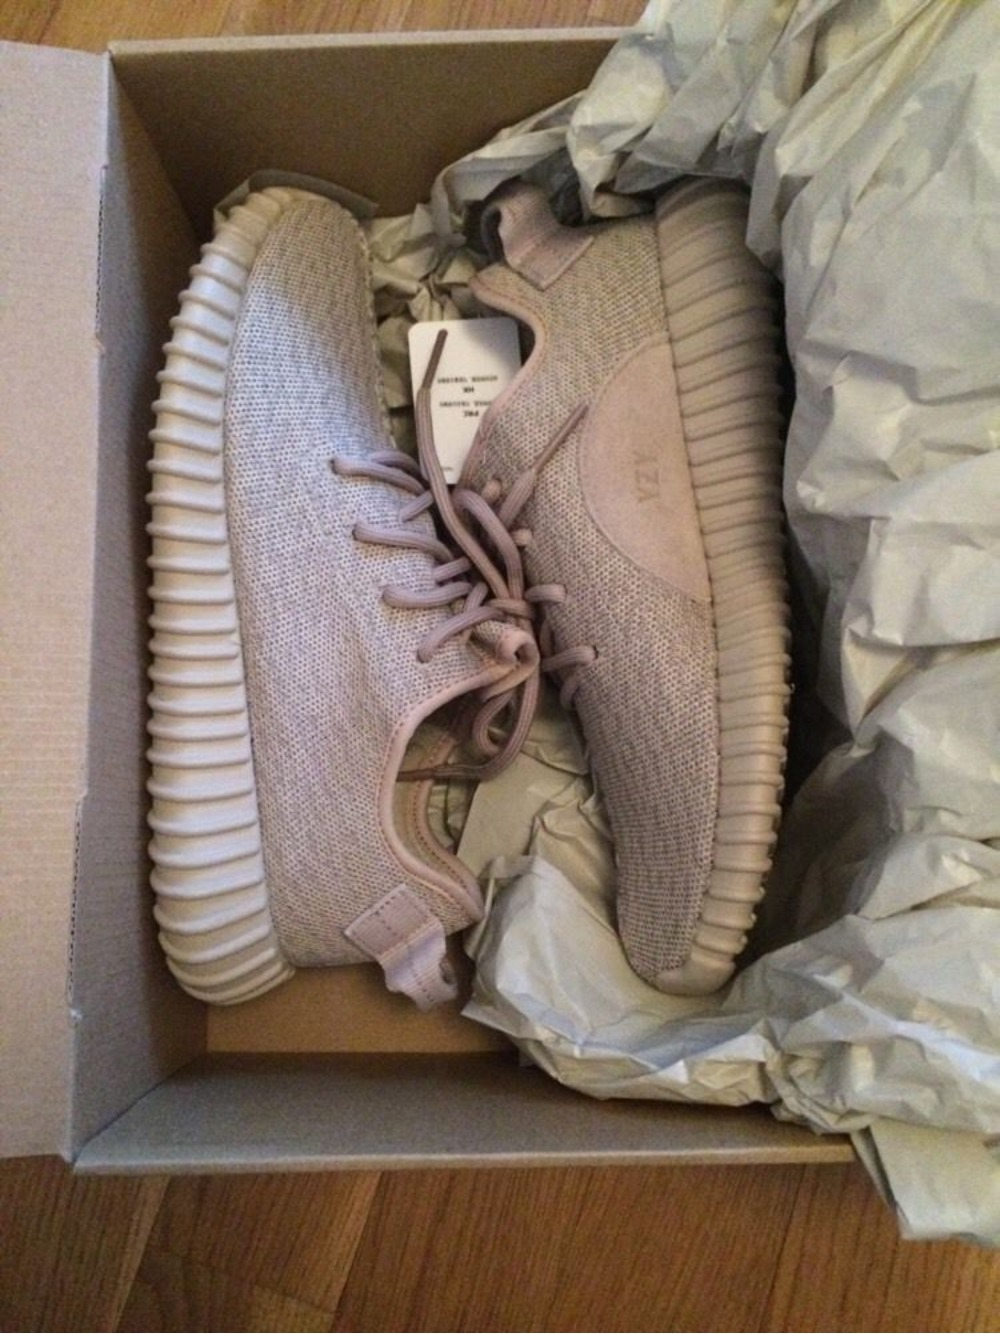 ad994fbbe0152 Adidas Yeezy Boost Size 6 wallbank-lfc.co.uk